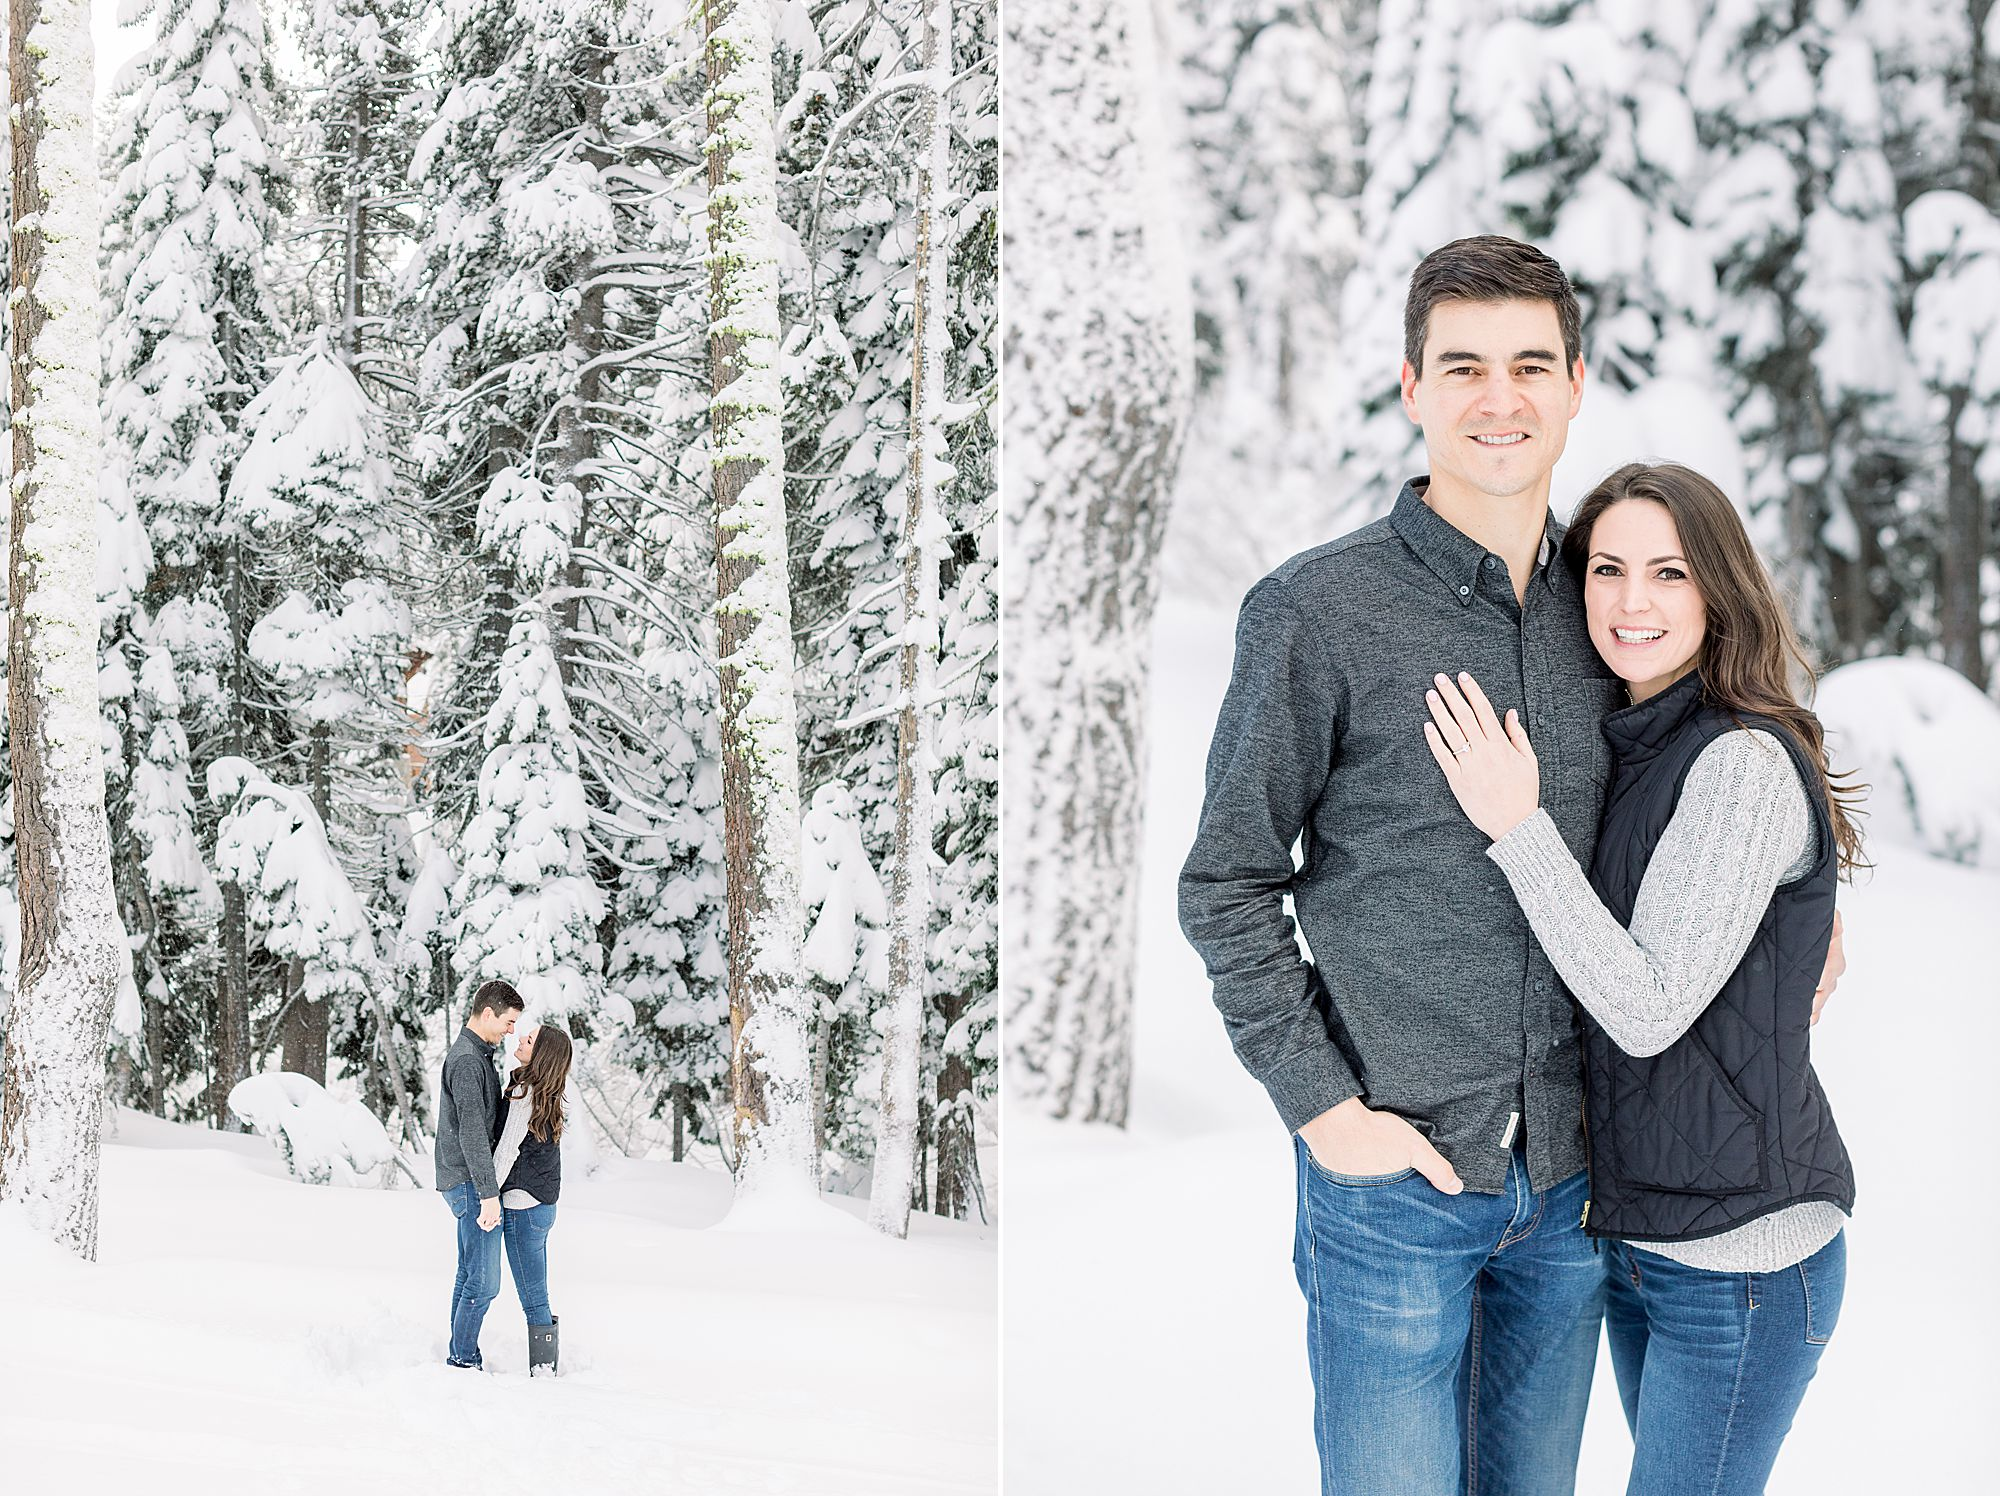 Snowy Tahoe Engagement Session - Alex and Kevin - Ashley Baumgartner - Tahoe Engagement Session - Tahoe Wedding Photographer - Tahoe Engagement Photos - Snow Engagement Photos_0001.jpg